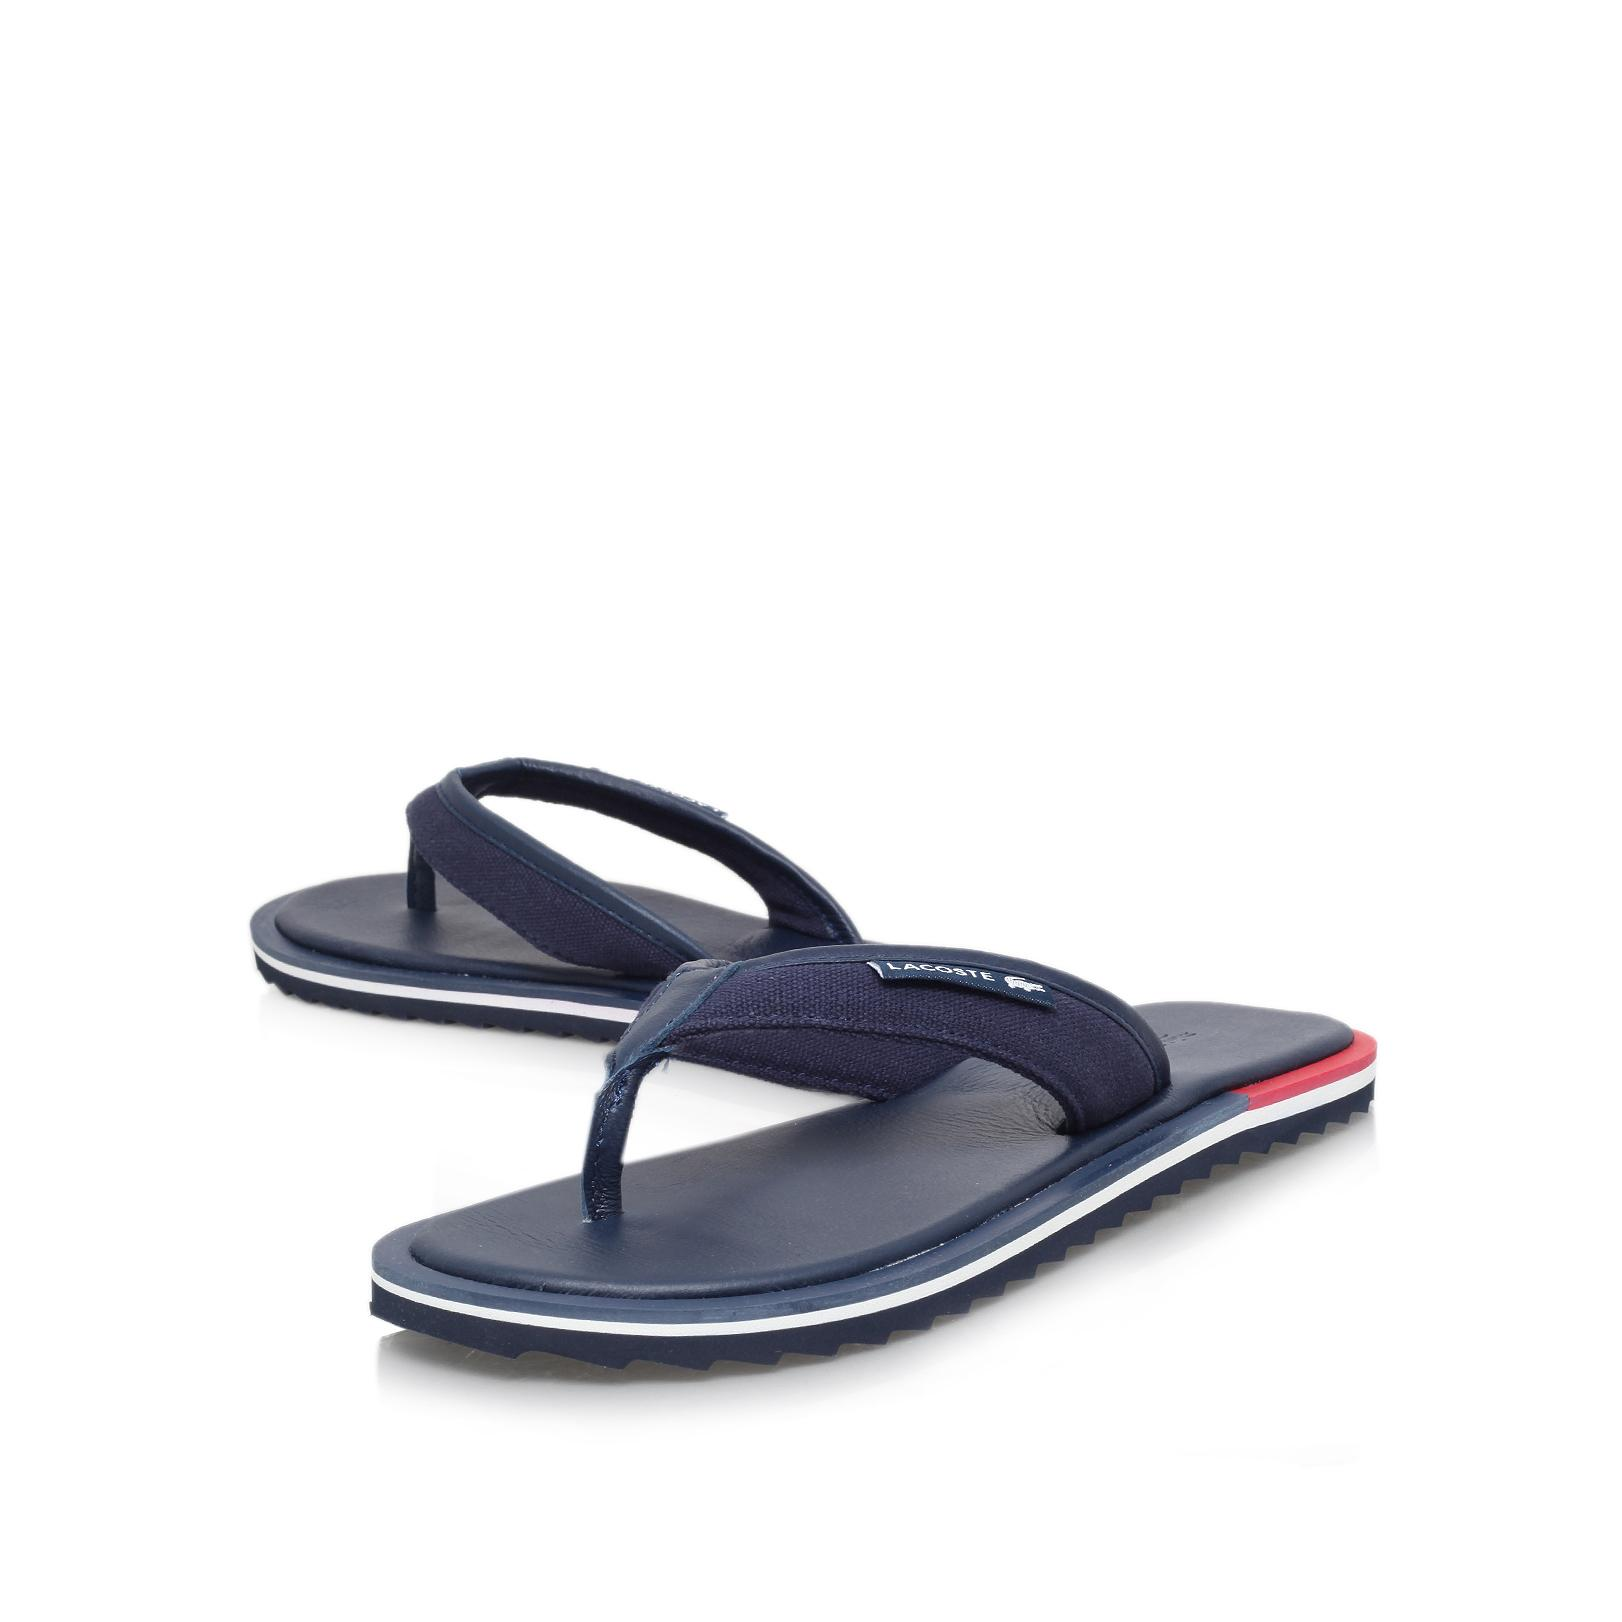 8358a9fe157e Lacoste Athali 2 Flip Flop in Blue for Men - Lyst